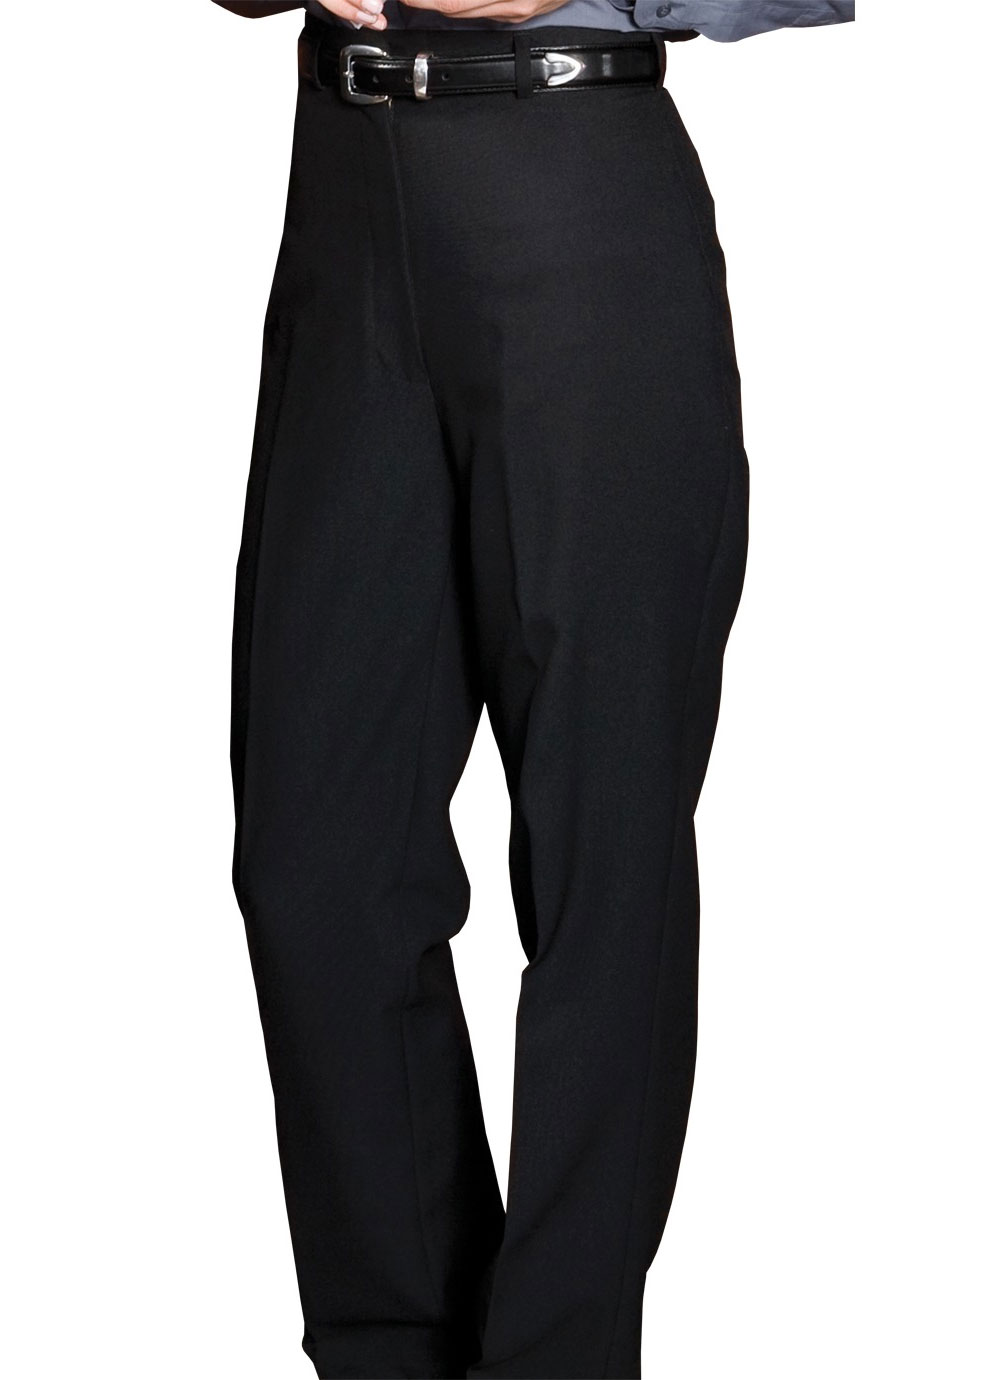 Womens Casino Pocketless Pants